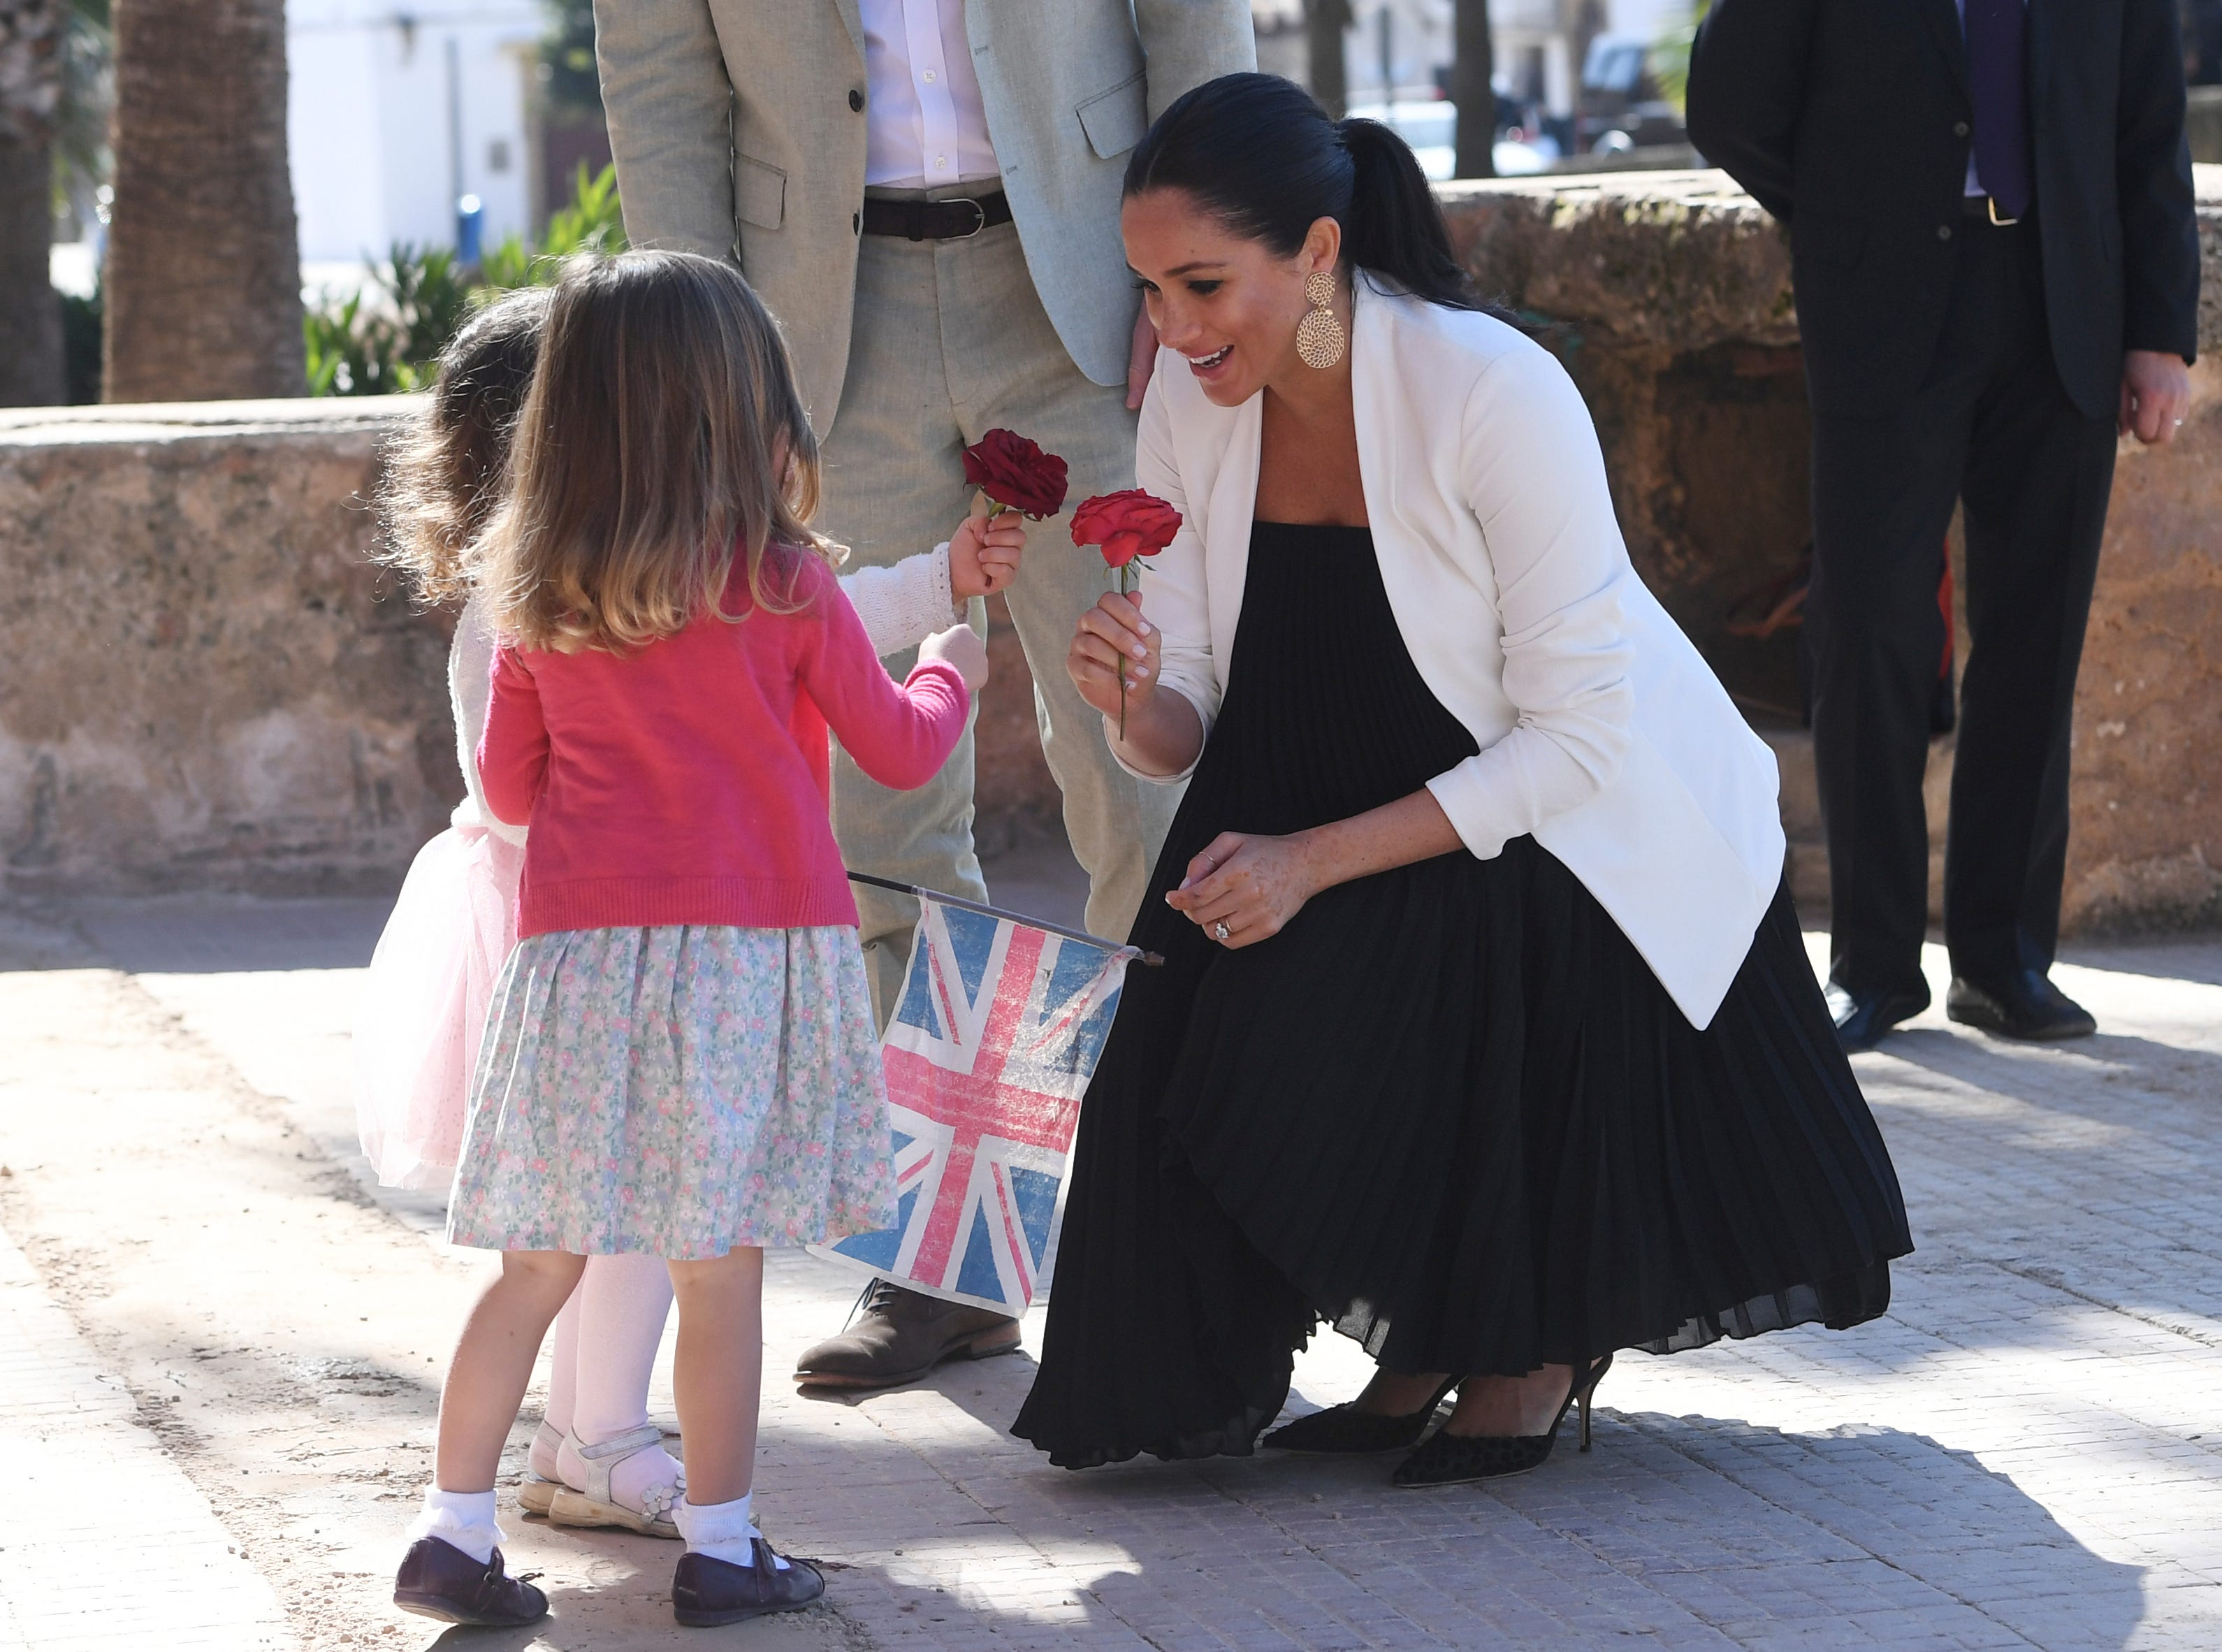 Britain's Prince Harry and Meghan, Duchess of Sussex speak with children as they visit the Andalusian Gardens in Rabat, Morocco, Monday, Feb. 25, 2019. The Duke and Duchess of Sussex are on a three day visit to the country.